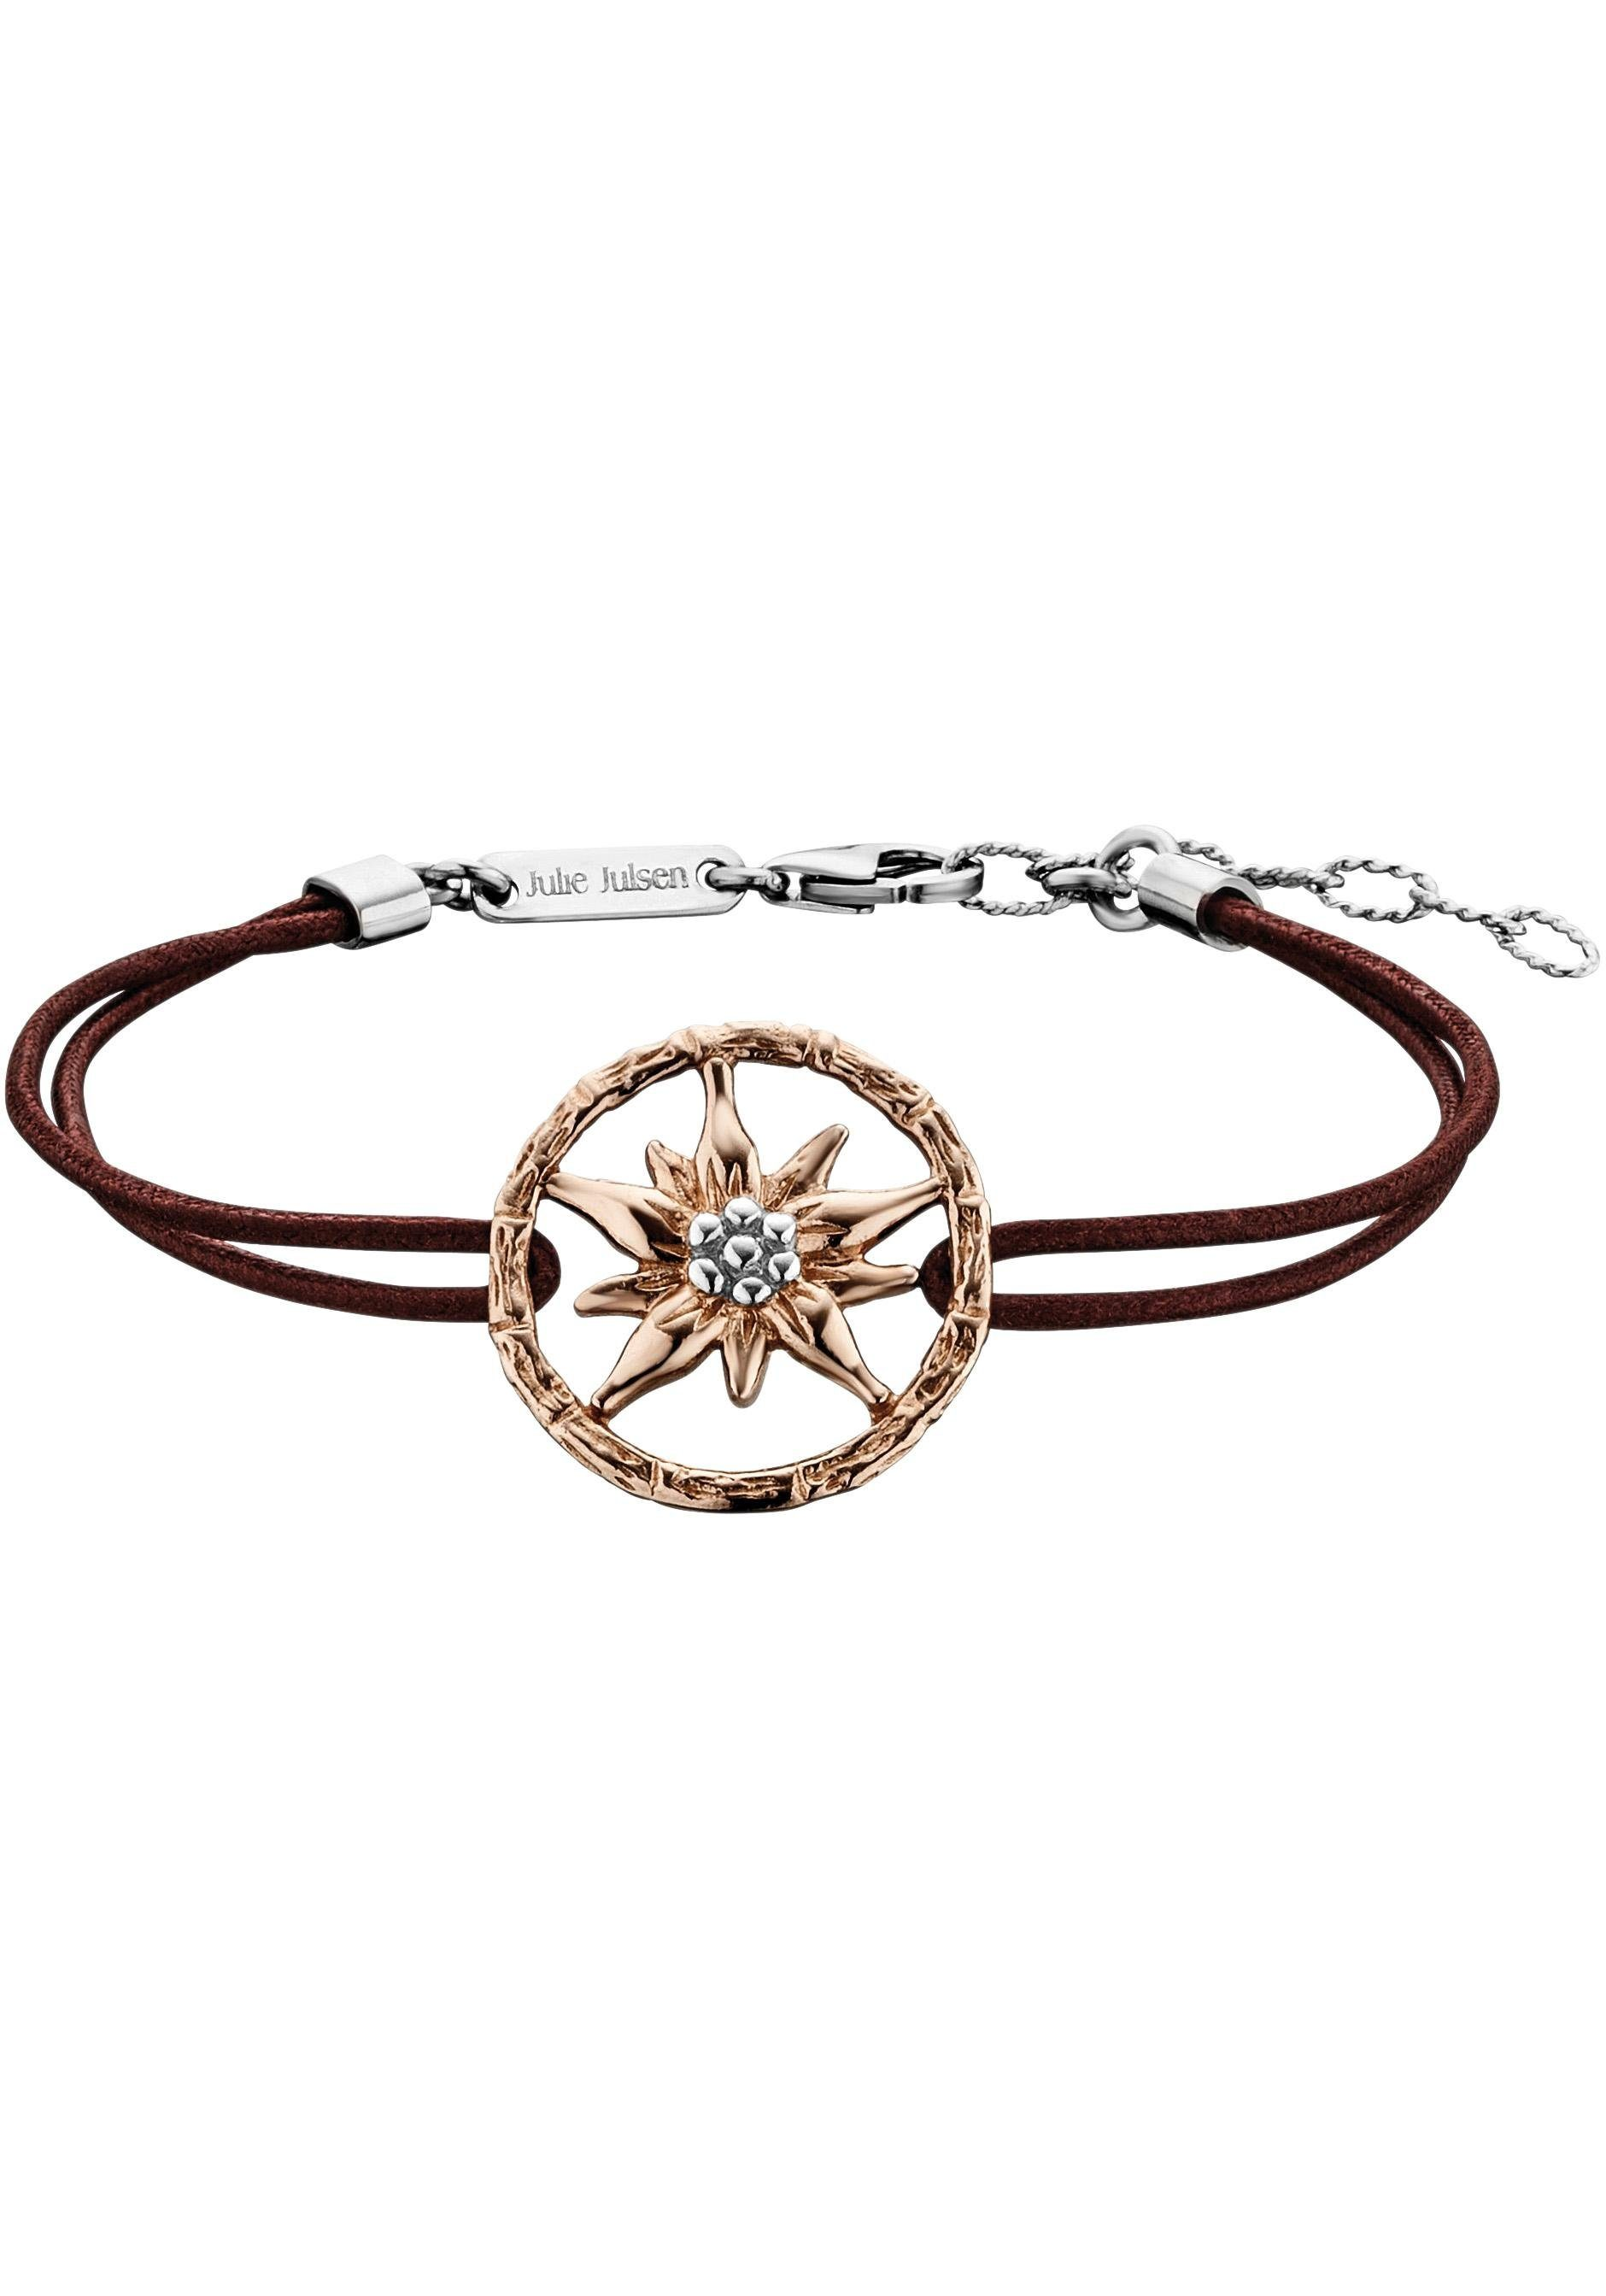 Julie Julsen Armband »Poems of Life COLLECTION, Edelweiss, JJBR10292.4«